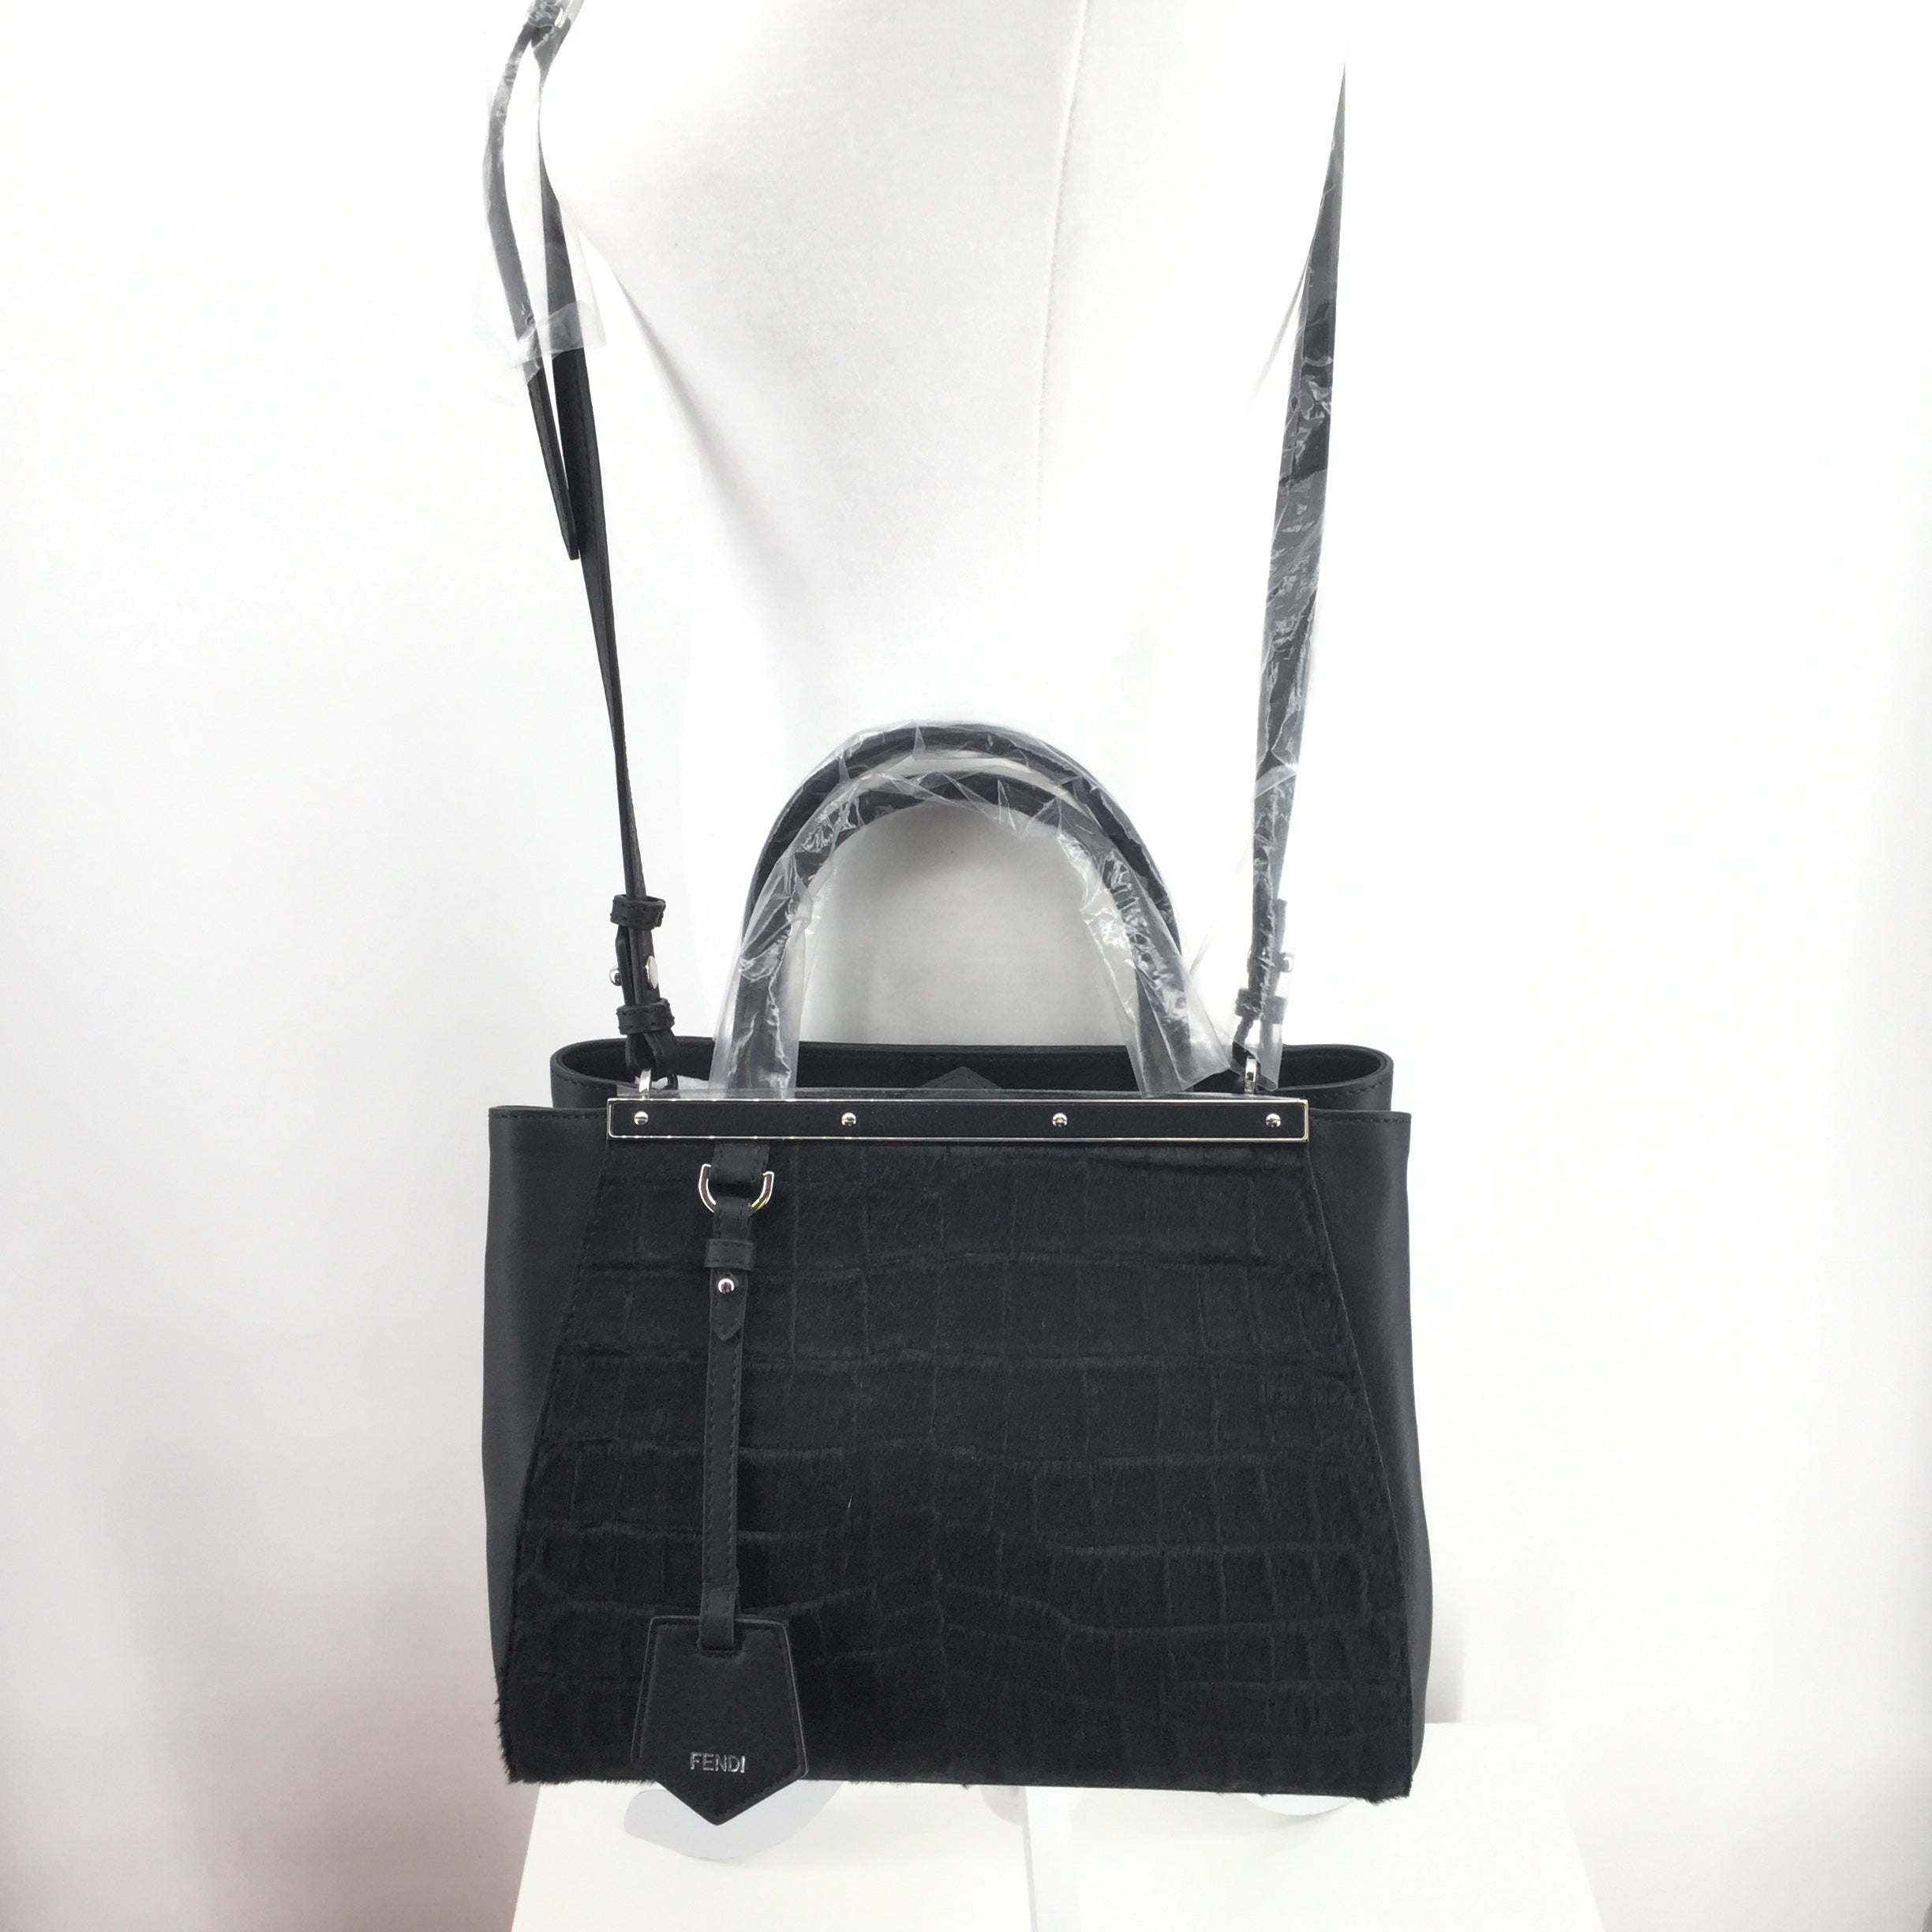 FENDI HANDBAG DESIGNER SIZE:MEDIUM - NEW WITH TAGS FENDI BLACK HANDBAG.